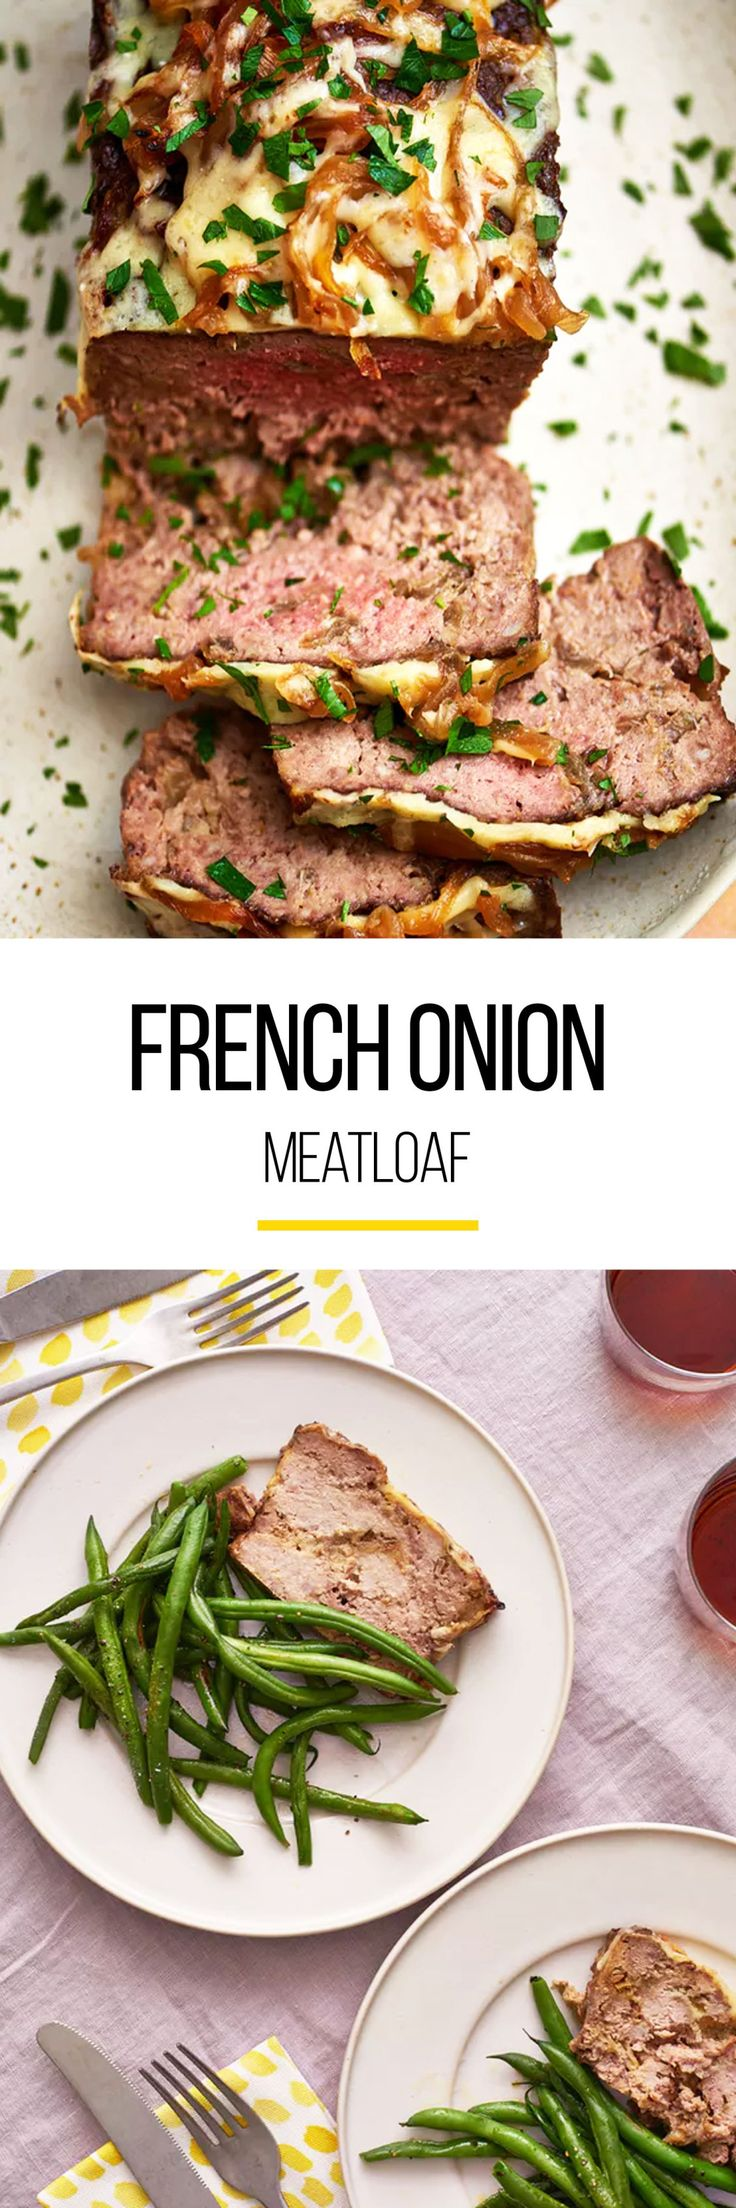 Dinnertime just got a little more comforting. This French onion meatloaf recipe is what you need to put into your weeknight meal rotation. Combining ground beef, veal, or pork, Worcestershire sauce, garlic, kosher salt, unseasoned dried breadcrumbs, yellow onion and Gruyère cheese makes this an all out crow-pleaser